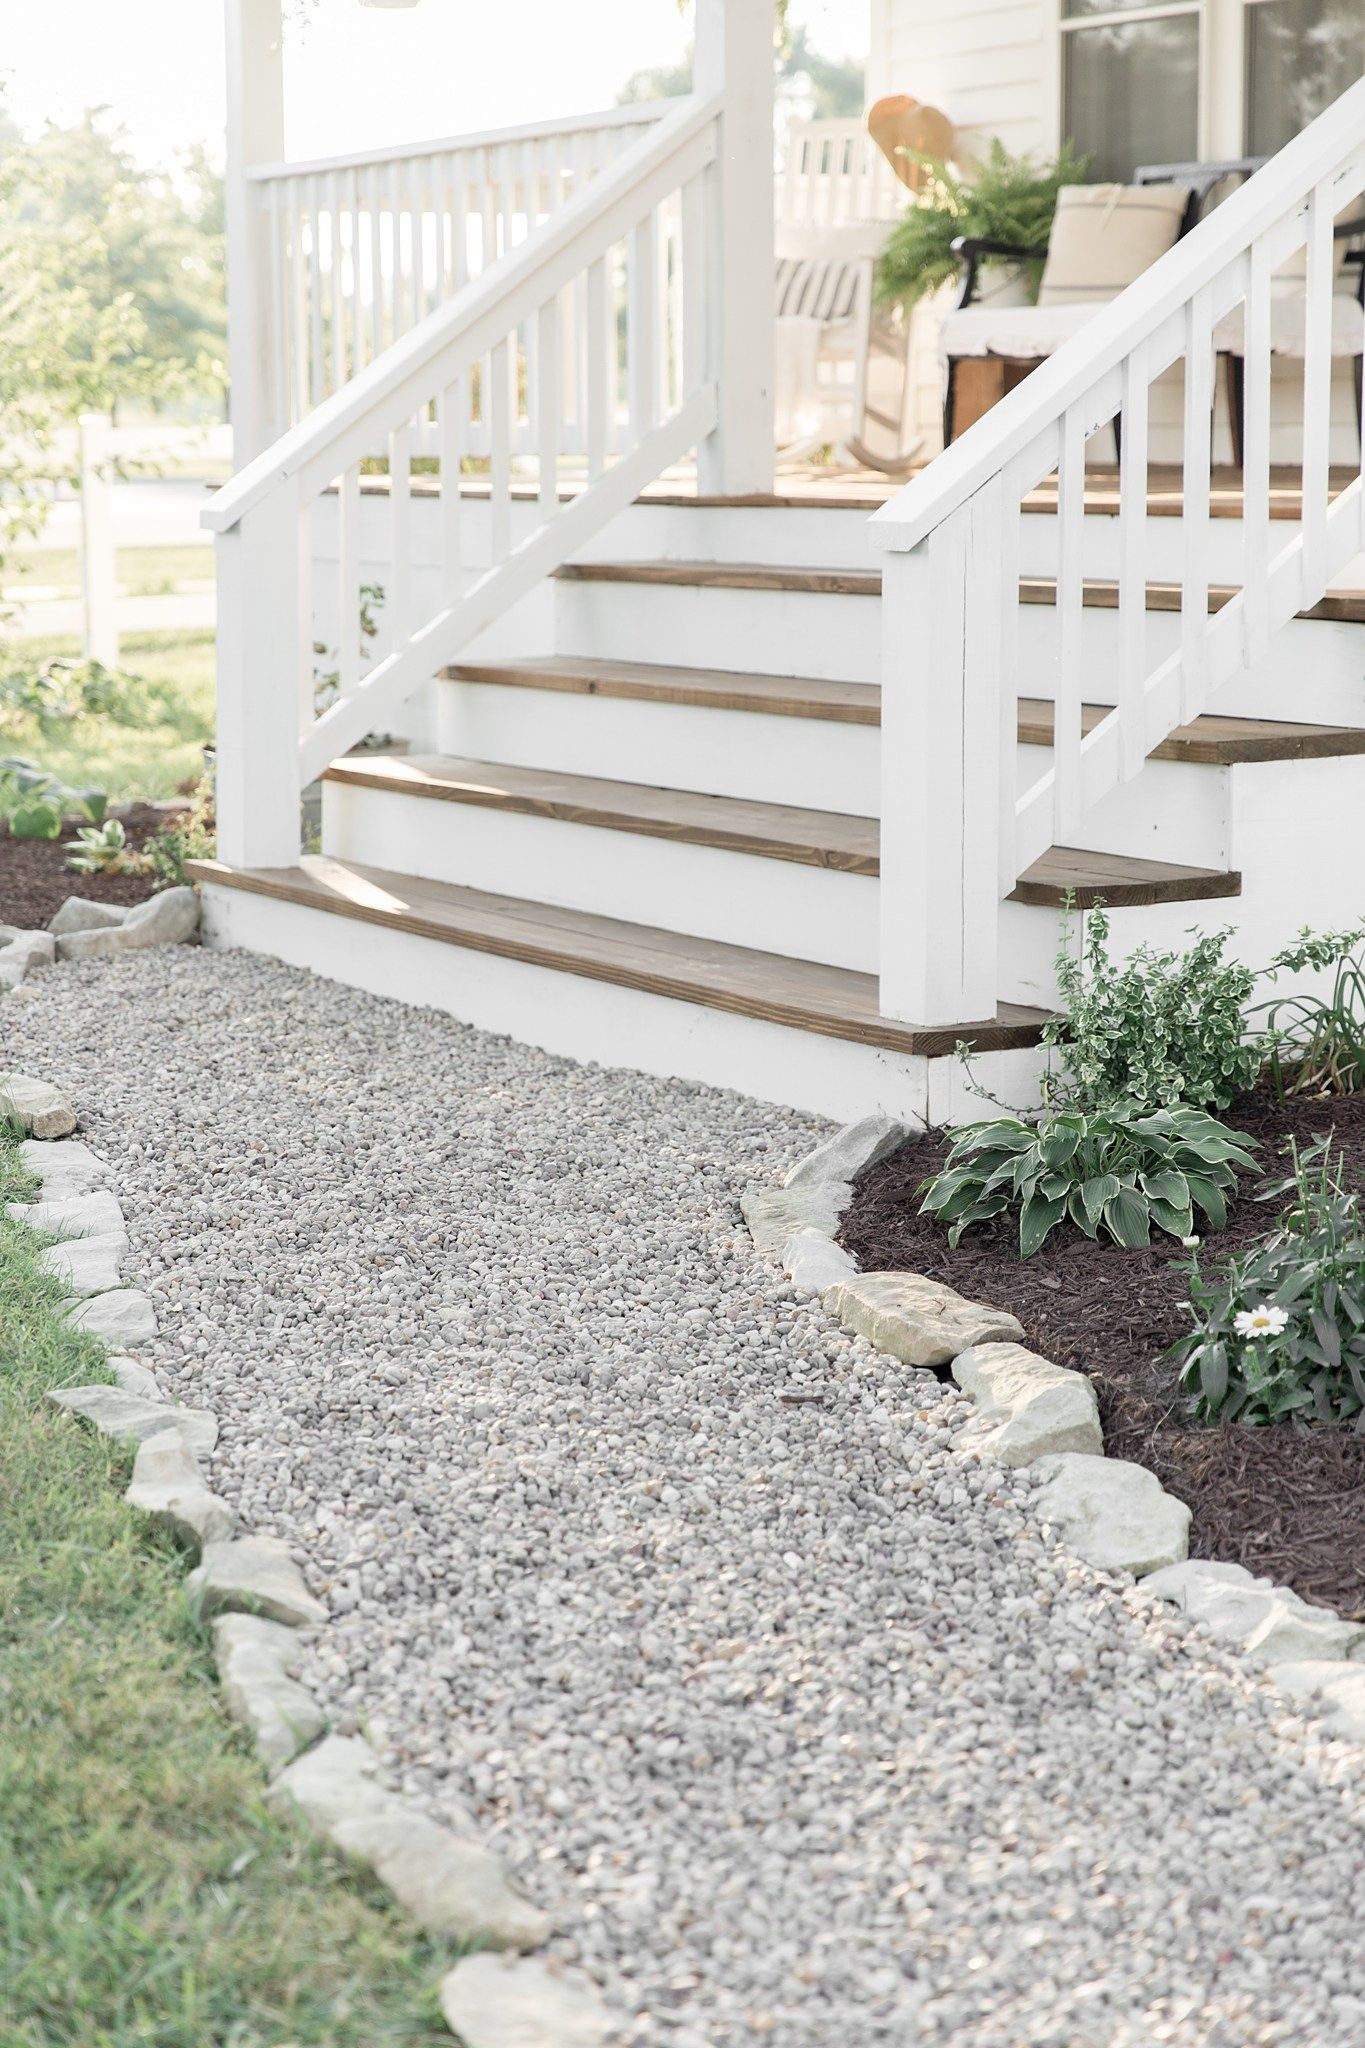 How To Cover Concrete Steps With Wood Front Porch Design Concrete Porch Front Porch Decorating